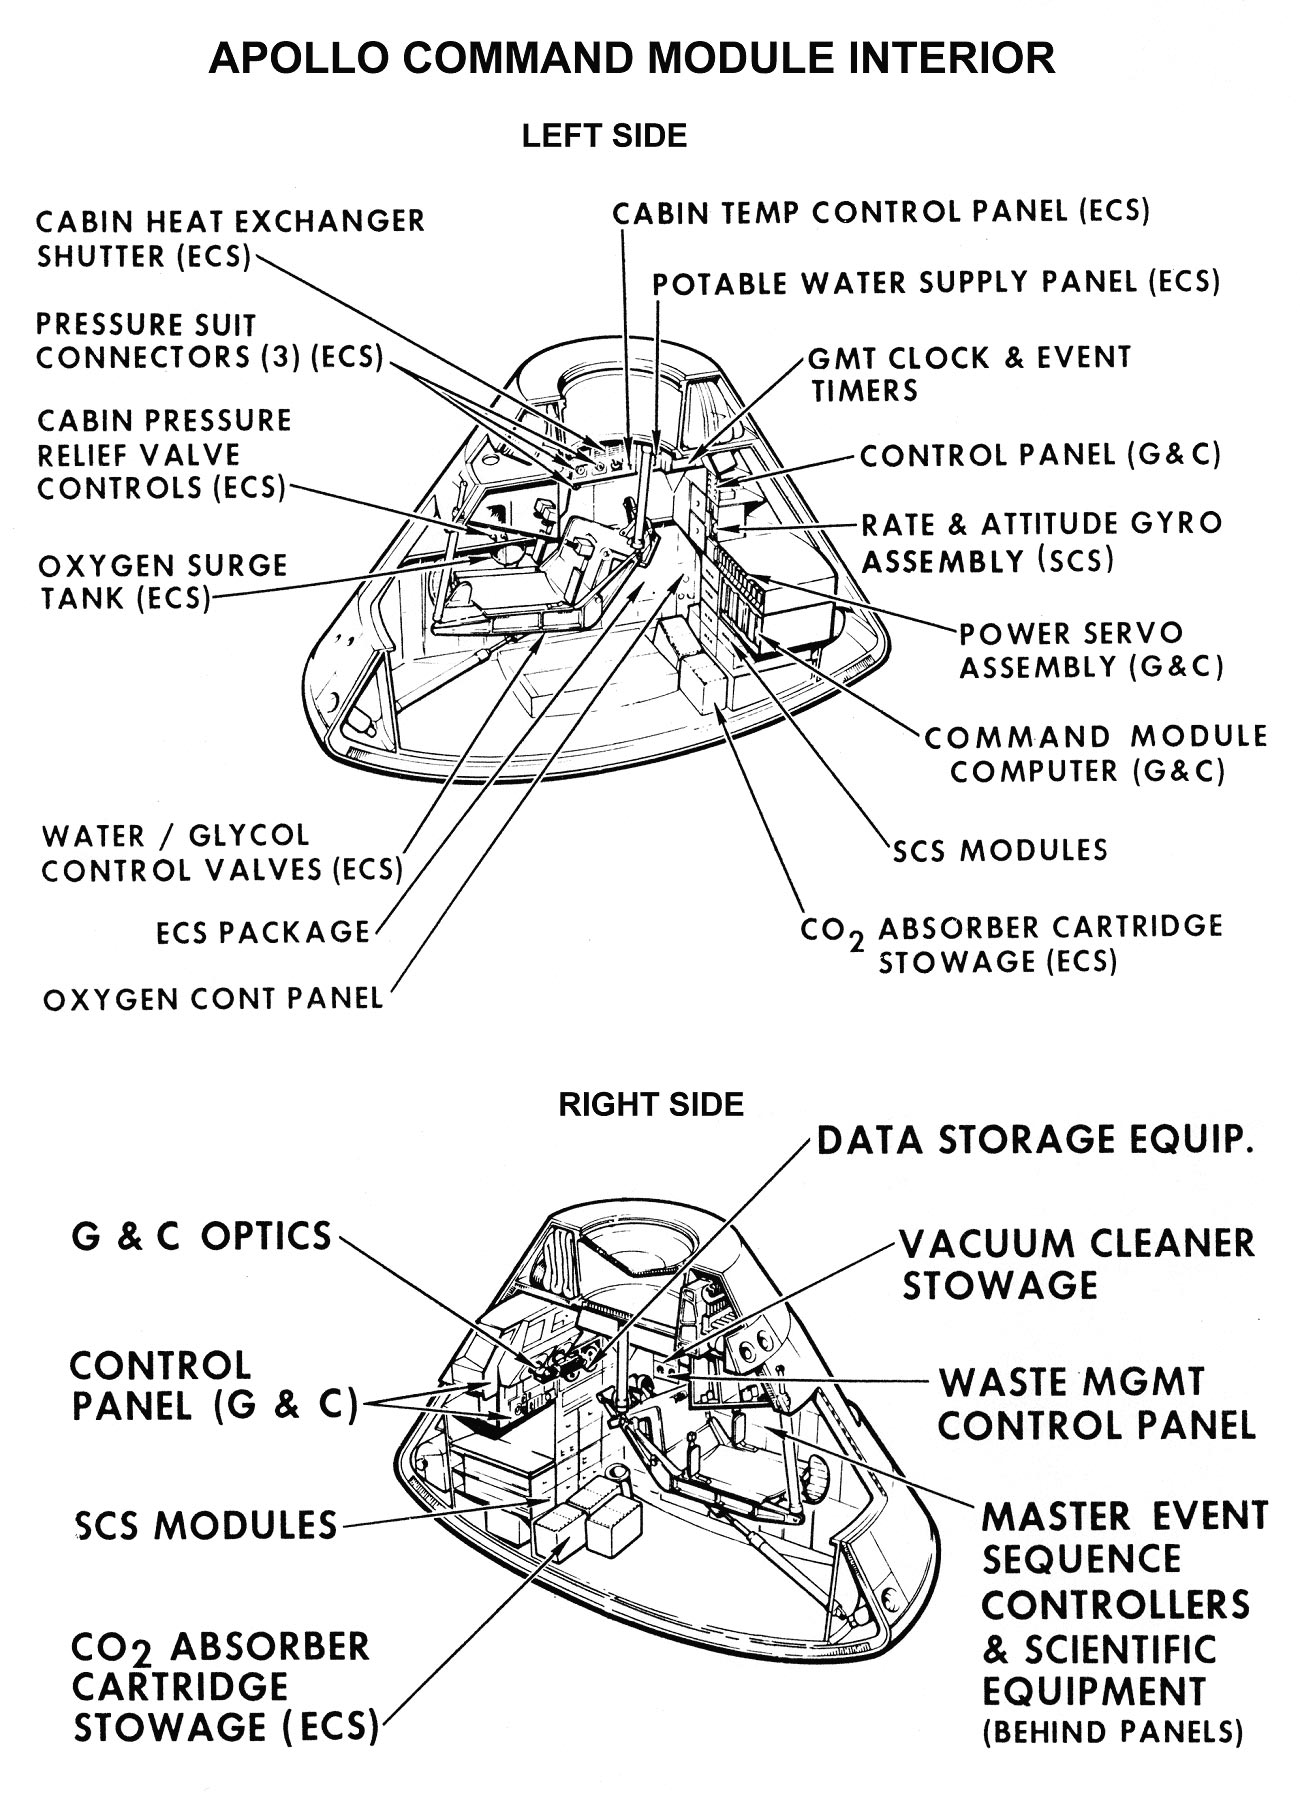 Apollo command module interior.